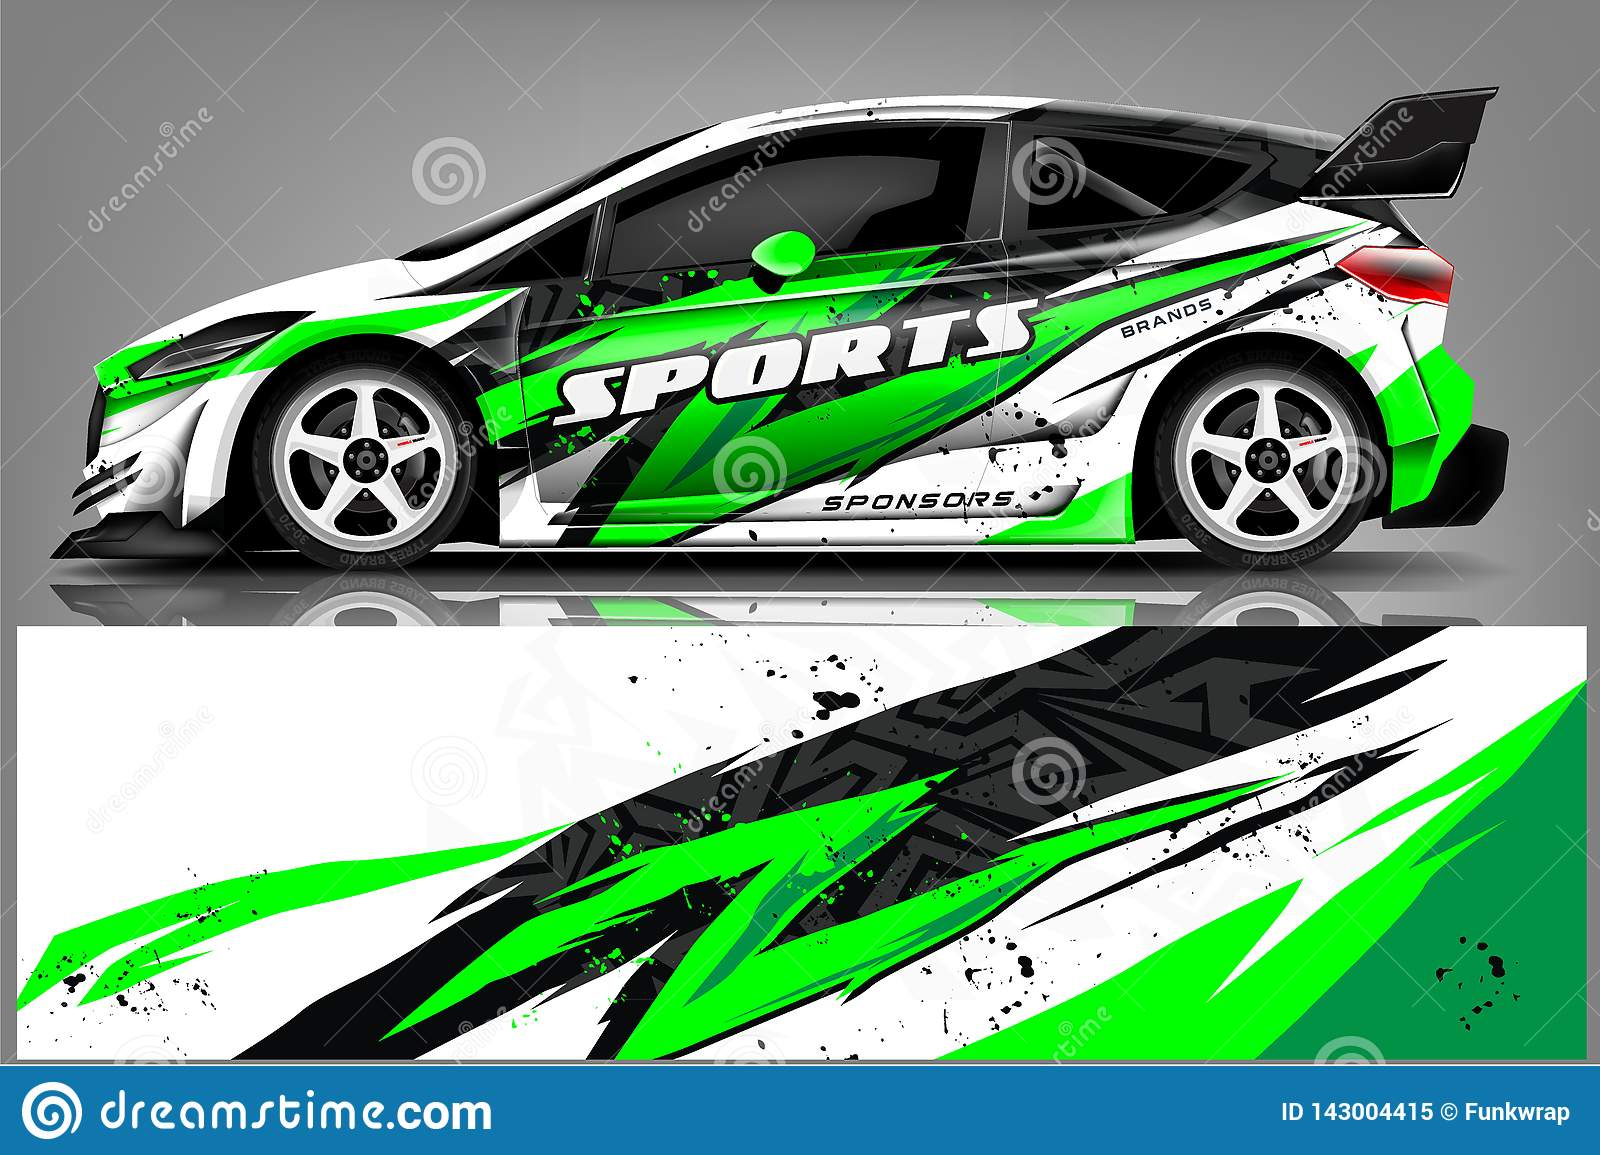 Car Decal Wrap Design Vector Graphic Abstract Stripe Racing Background Kit Designs For Vehicle Race Car Rally Adventure And Li Stock Illustration Illustration Of Mockup Decal 143004415